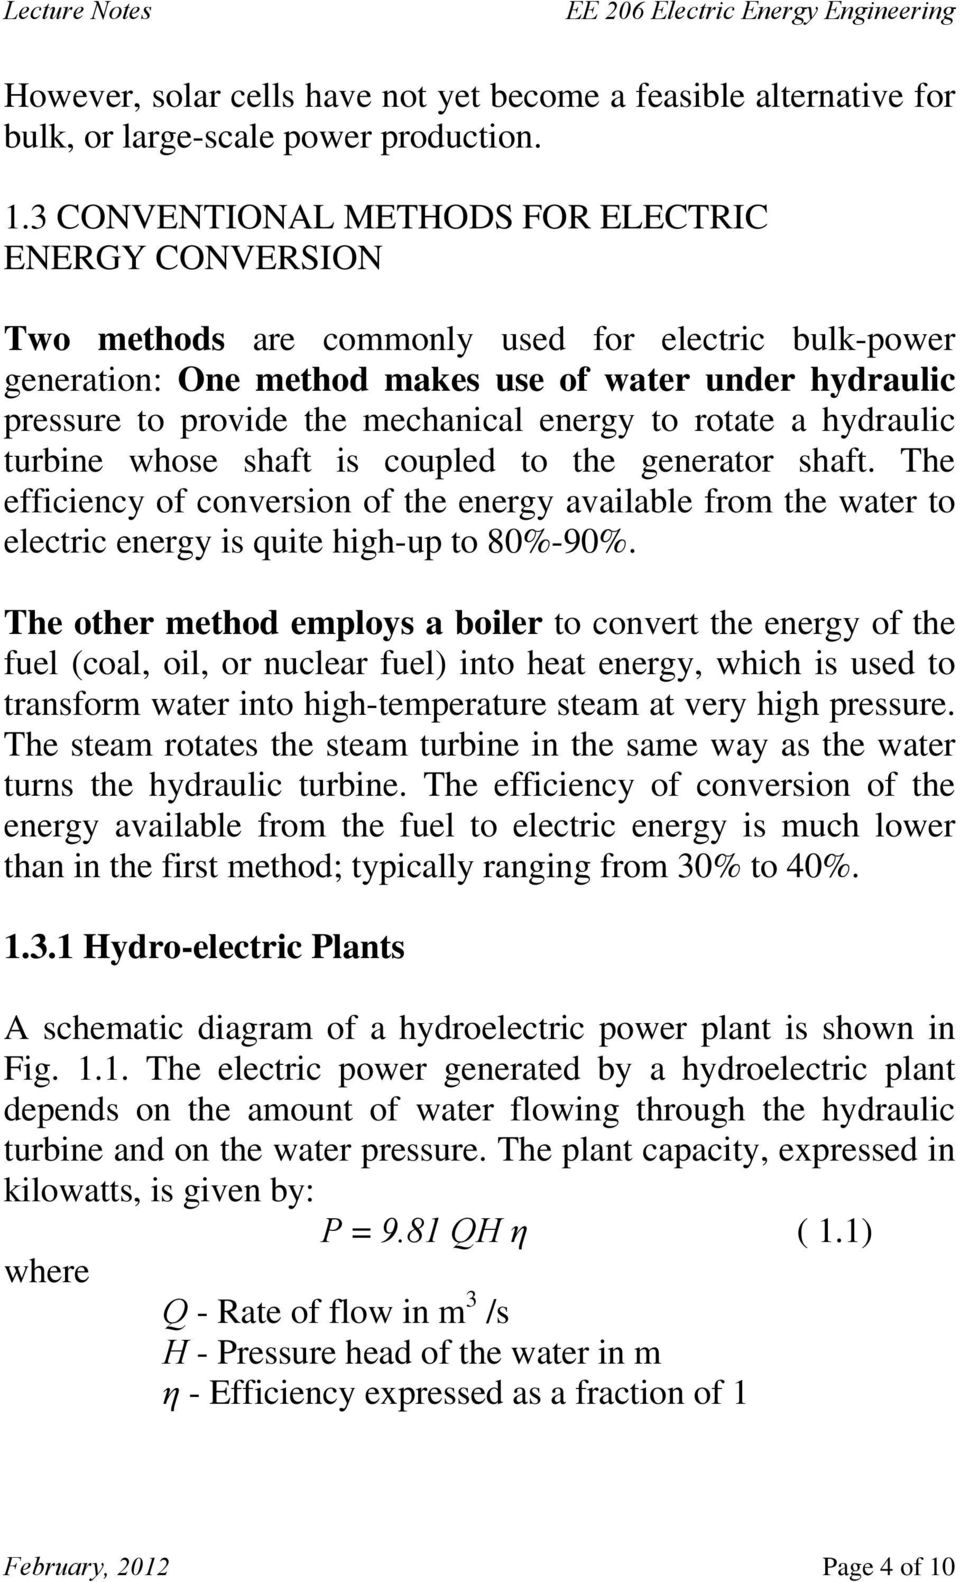 Ee 206 Electric Energy Engineering Pdf Hydroelectric Power Plant Schematic Diagram Mechanical To Rotate A Hydraulic Turbine Whose Shaft Is Coupled The Generator